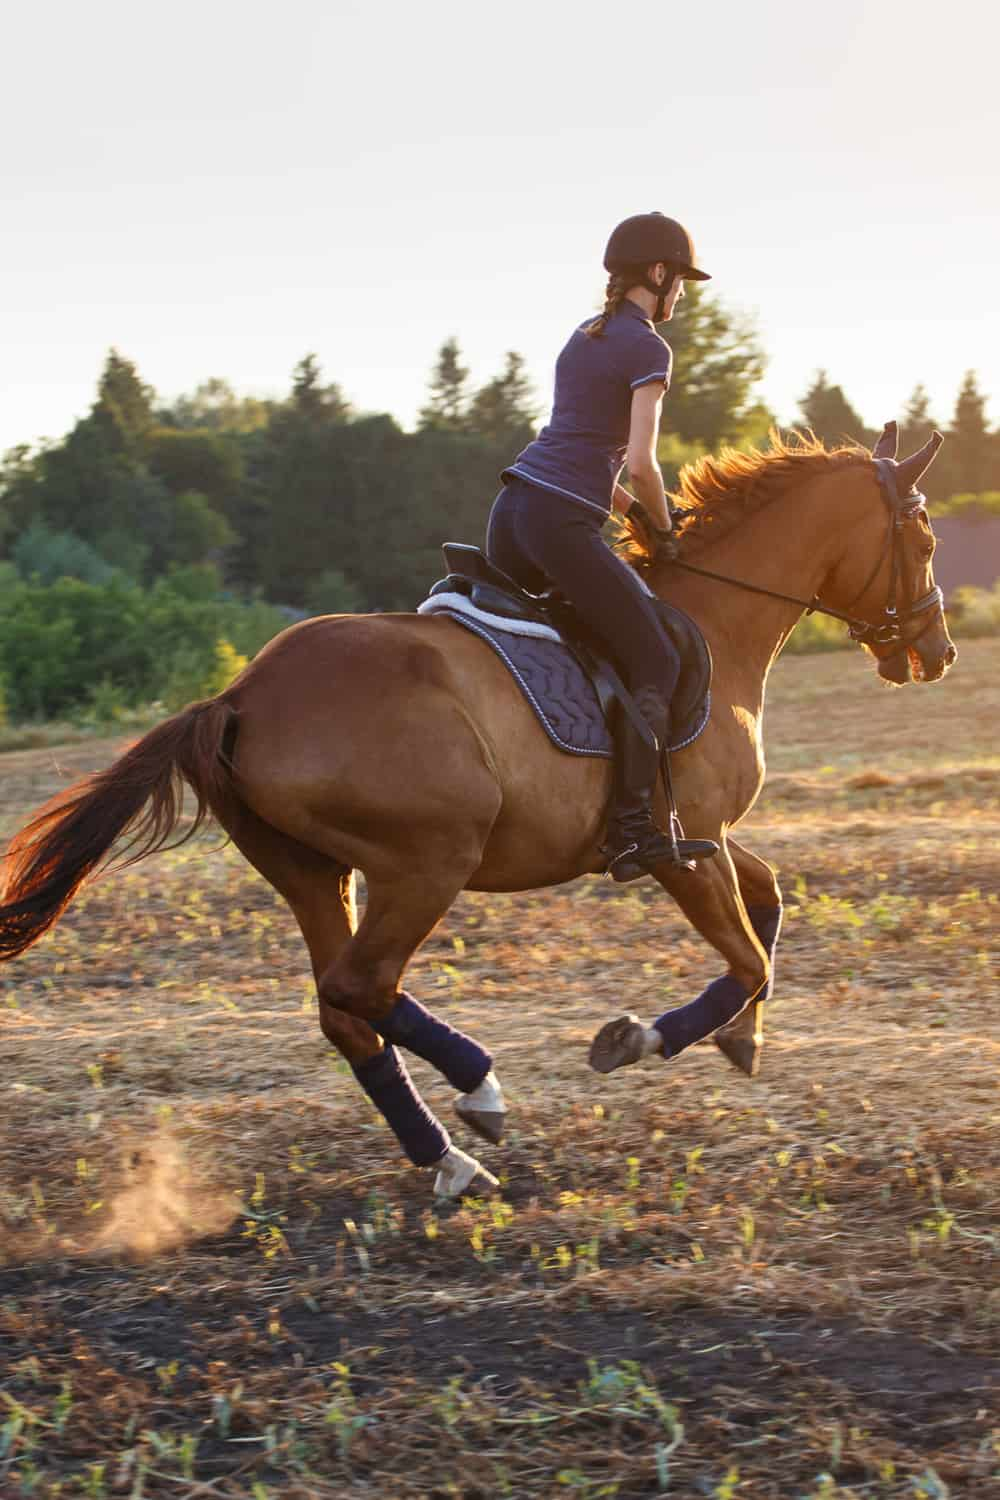 Common Horse Trotting Problems And How To Troubleshoot Them